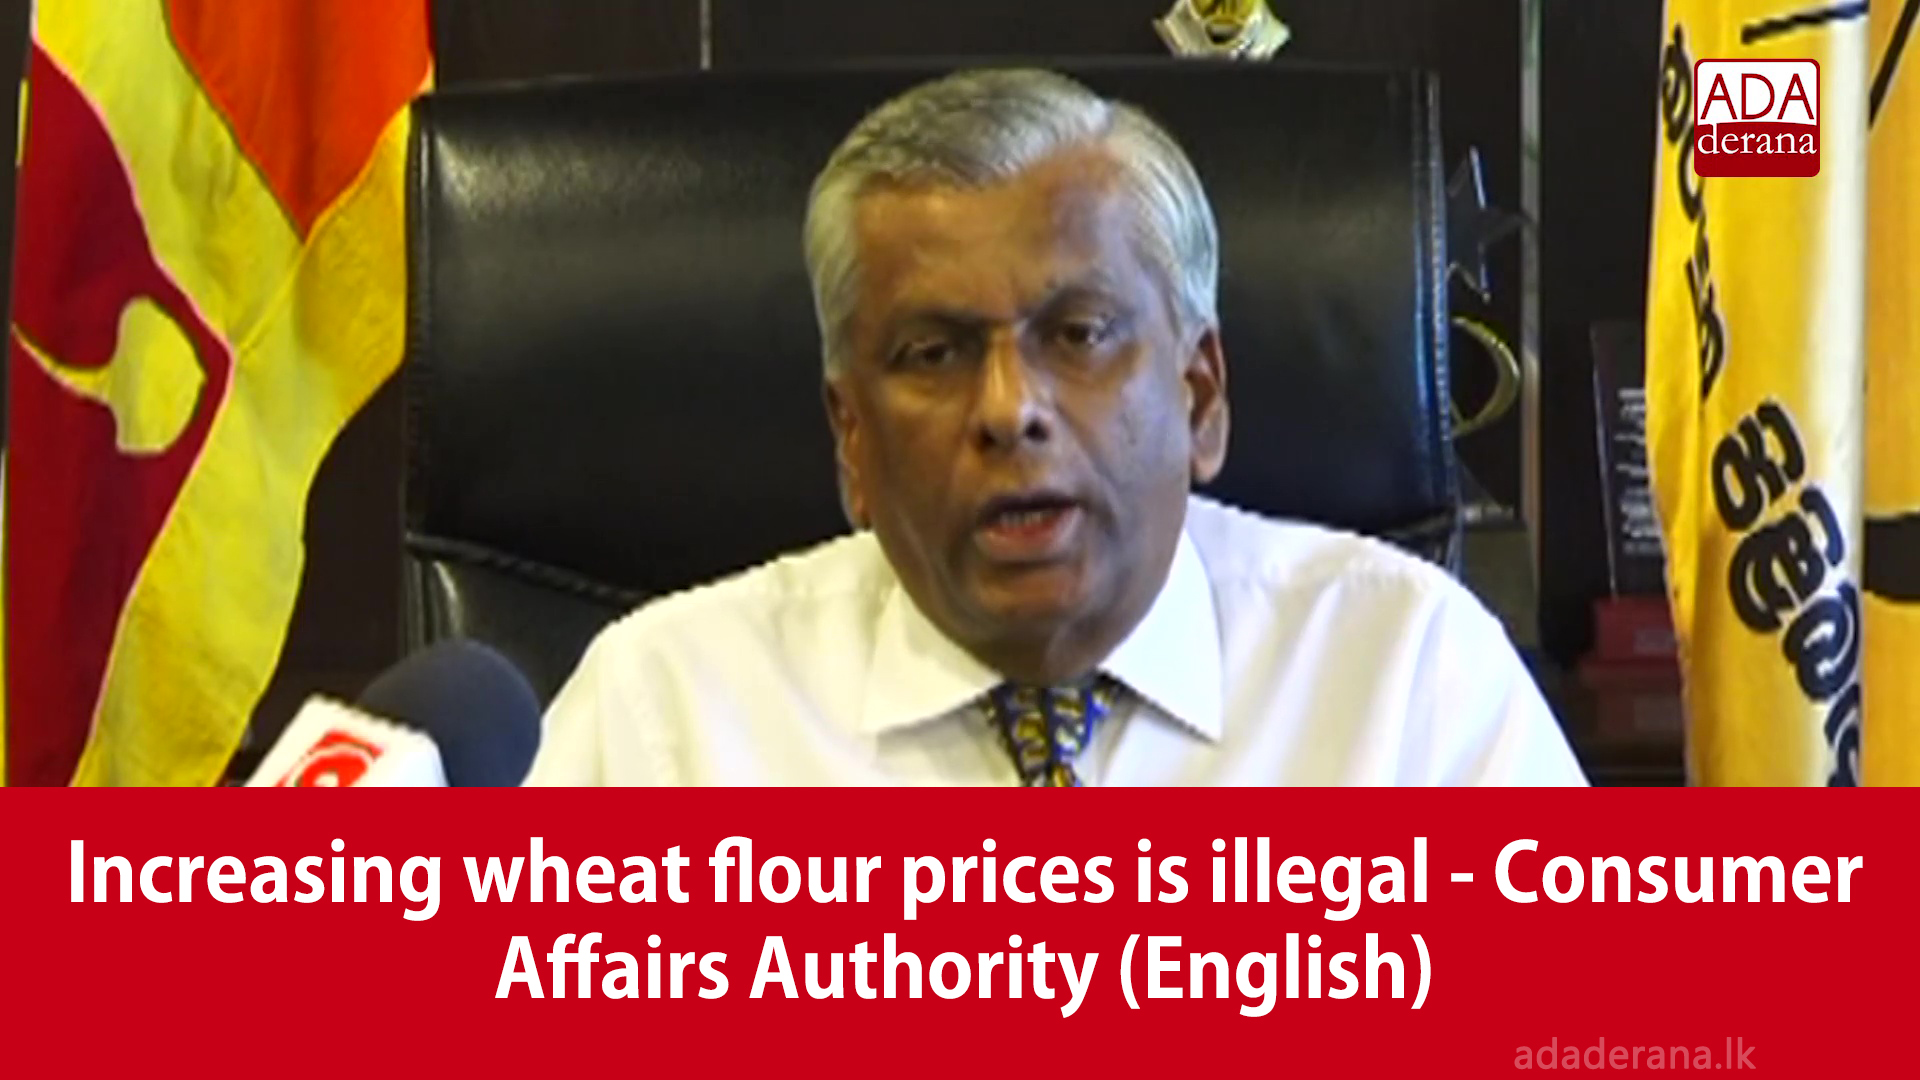 Increasing wheat flour prices is illegal - Consumer Affairs Authority (English)